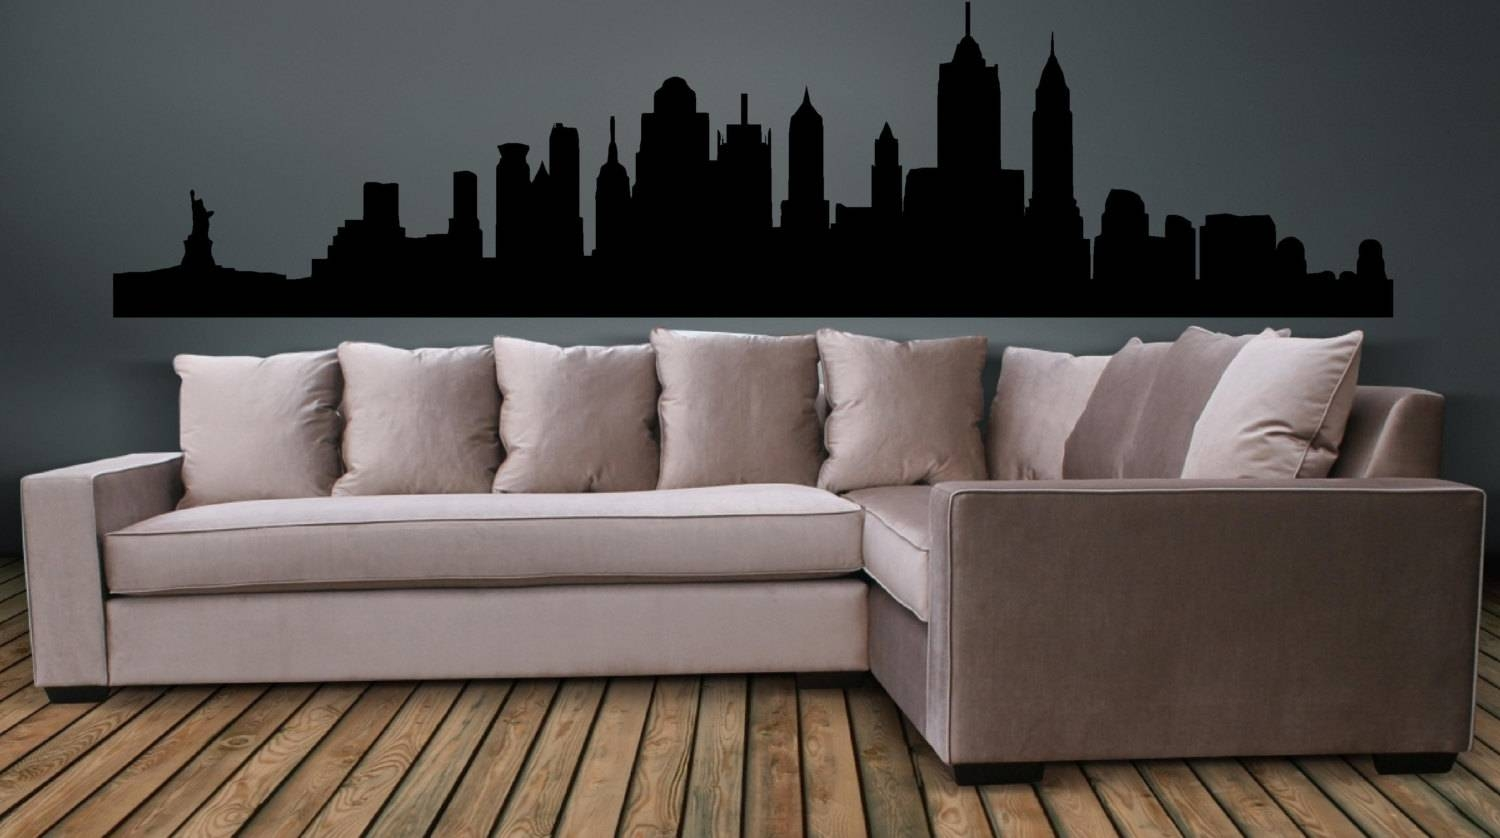 New York City Skyline Wall Decal Wall Art Sticker Pertaining To Most Recent New York City Wall Art (View 16 of 20)